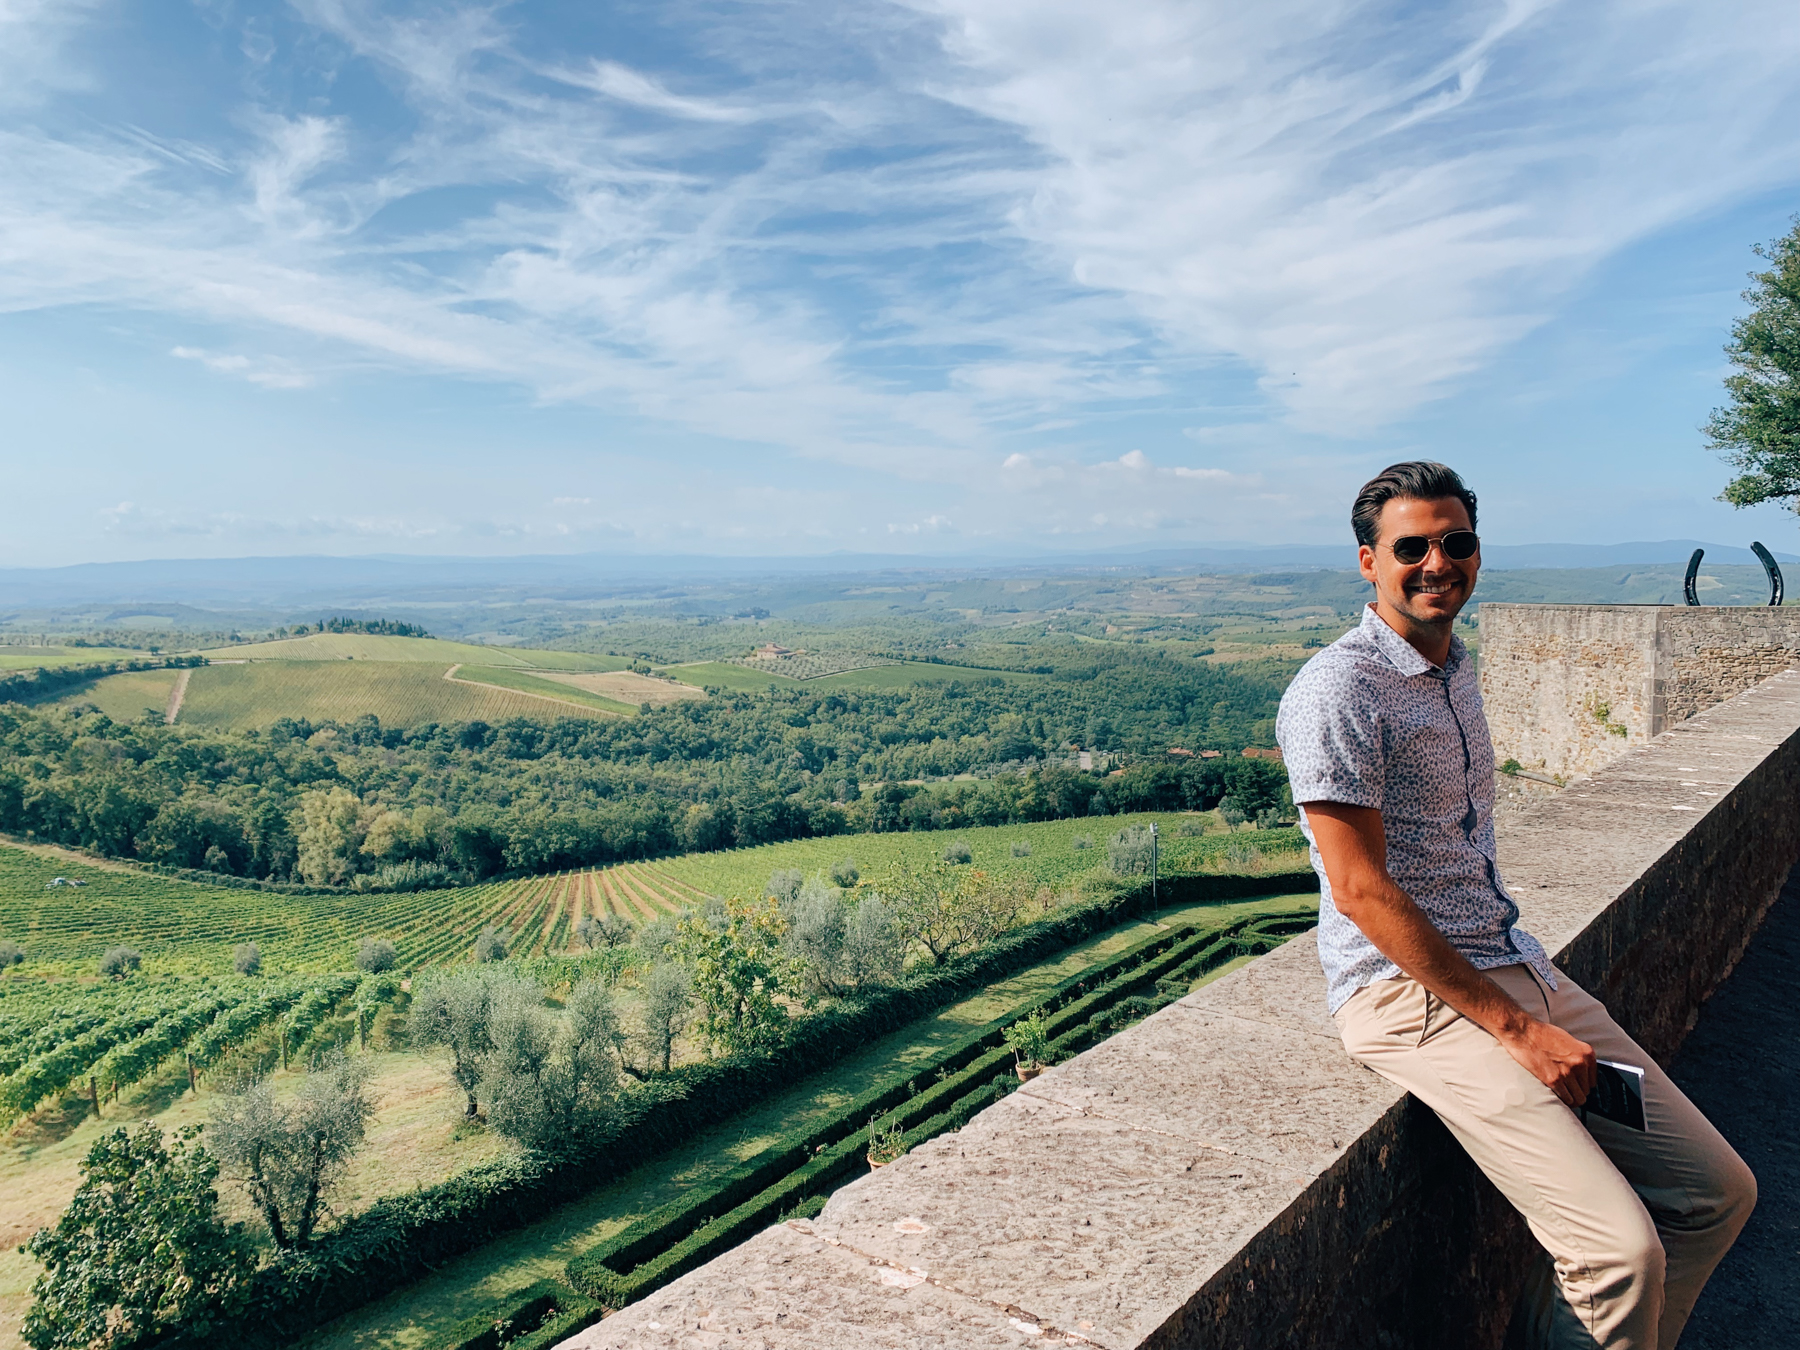 Nate with the view of Tuscany behind him.